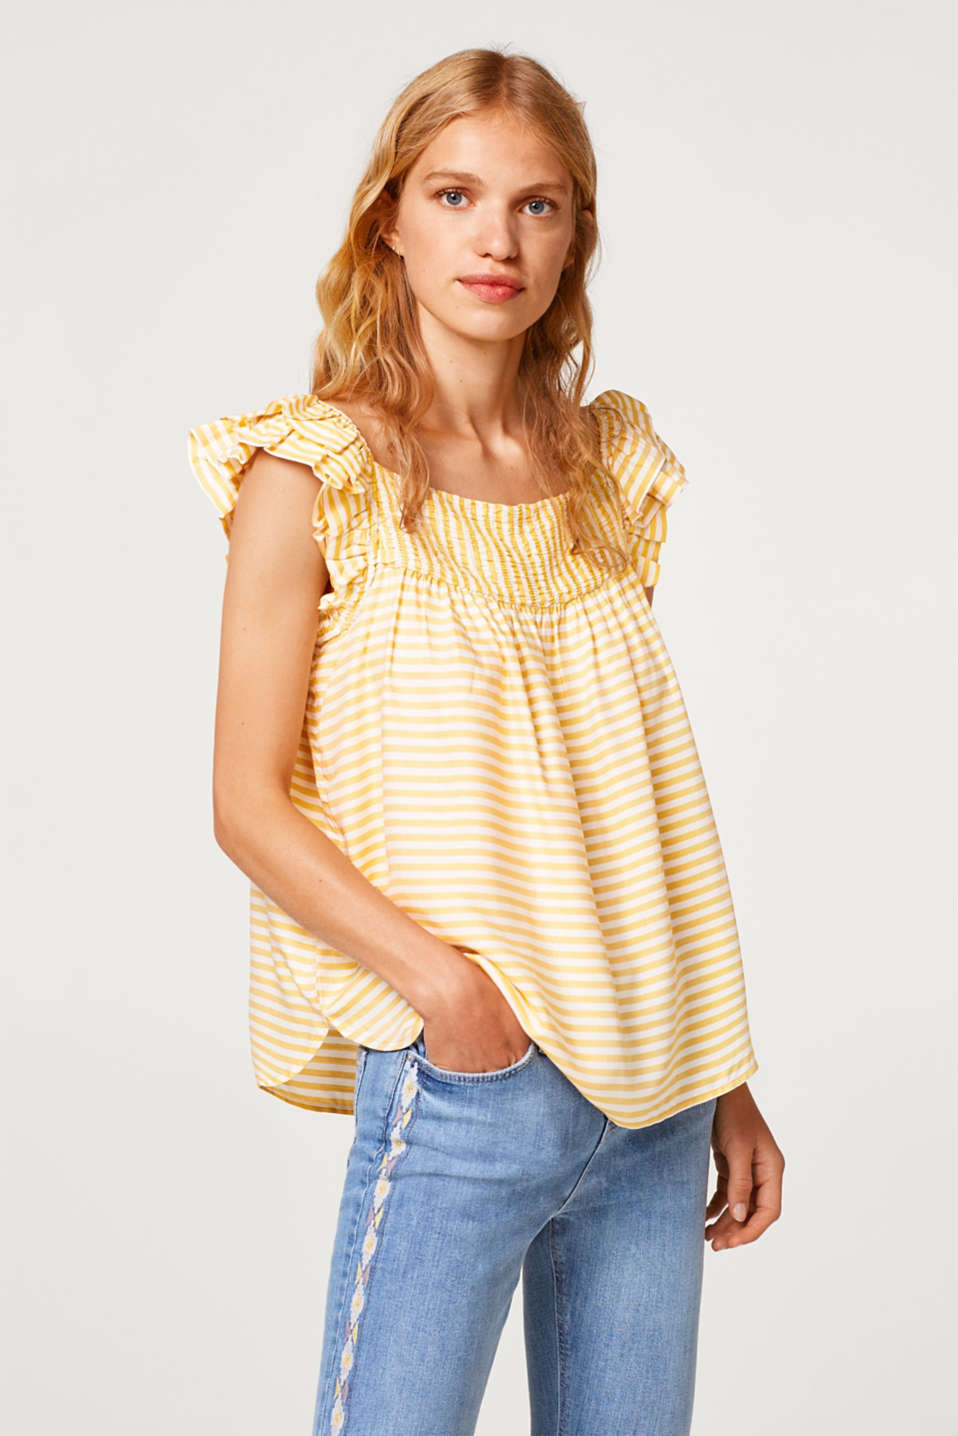 Esprit - A-line blouse top with frills